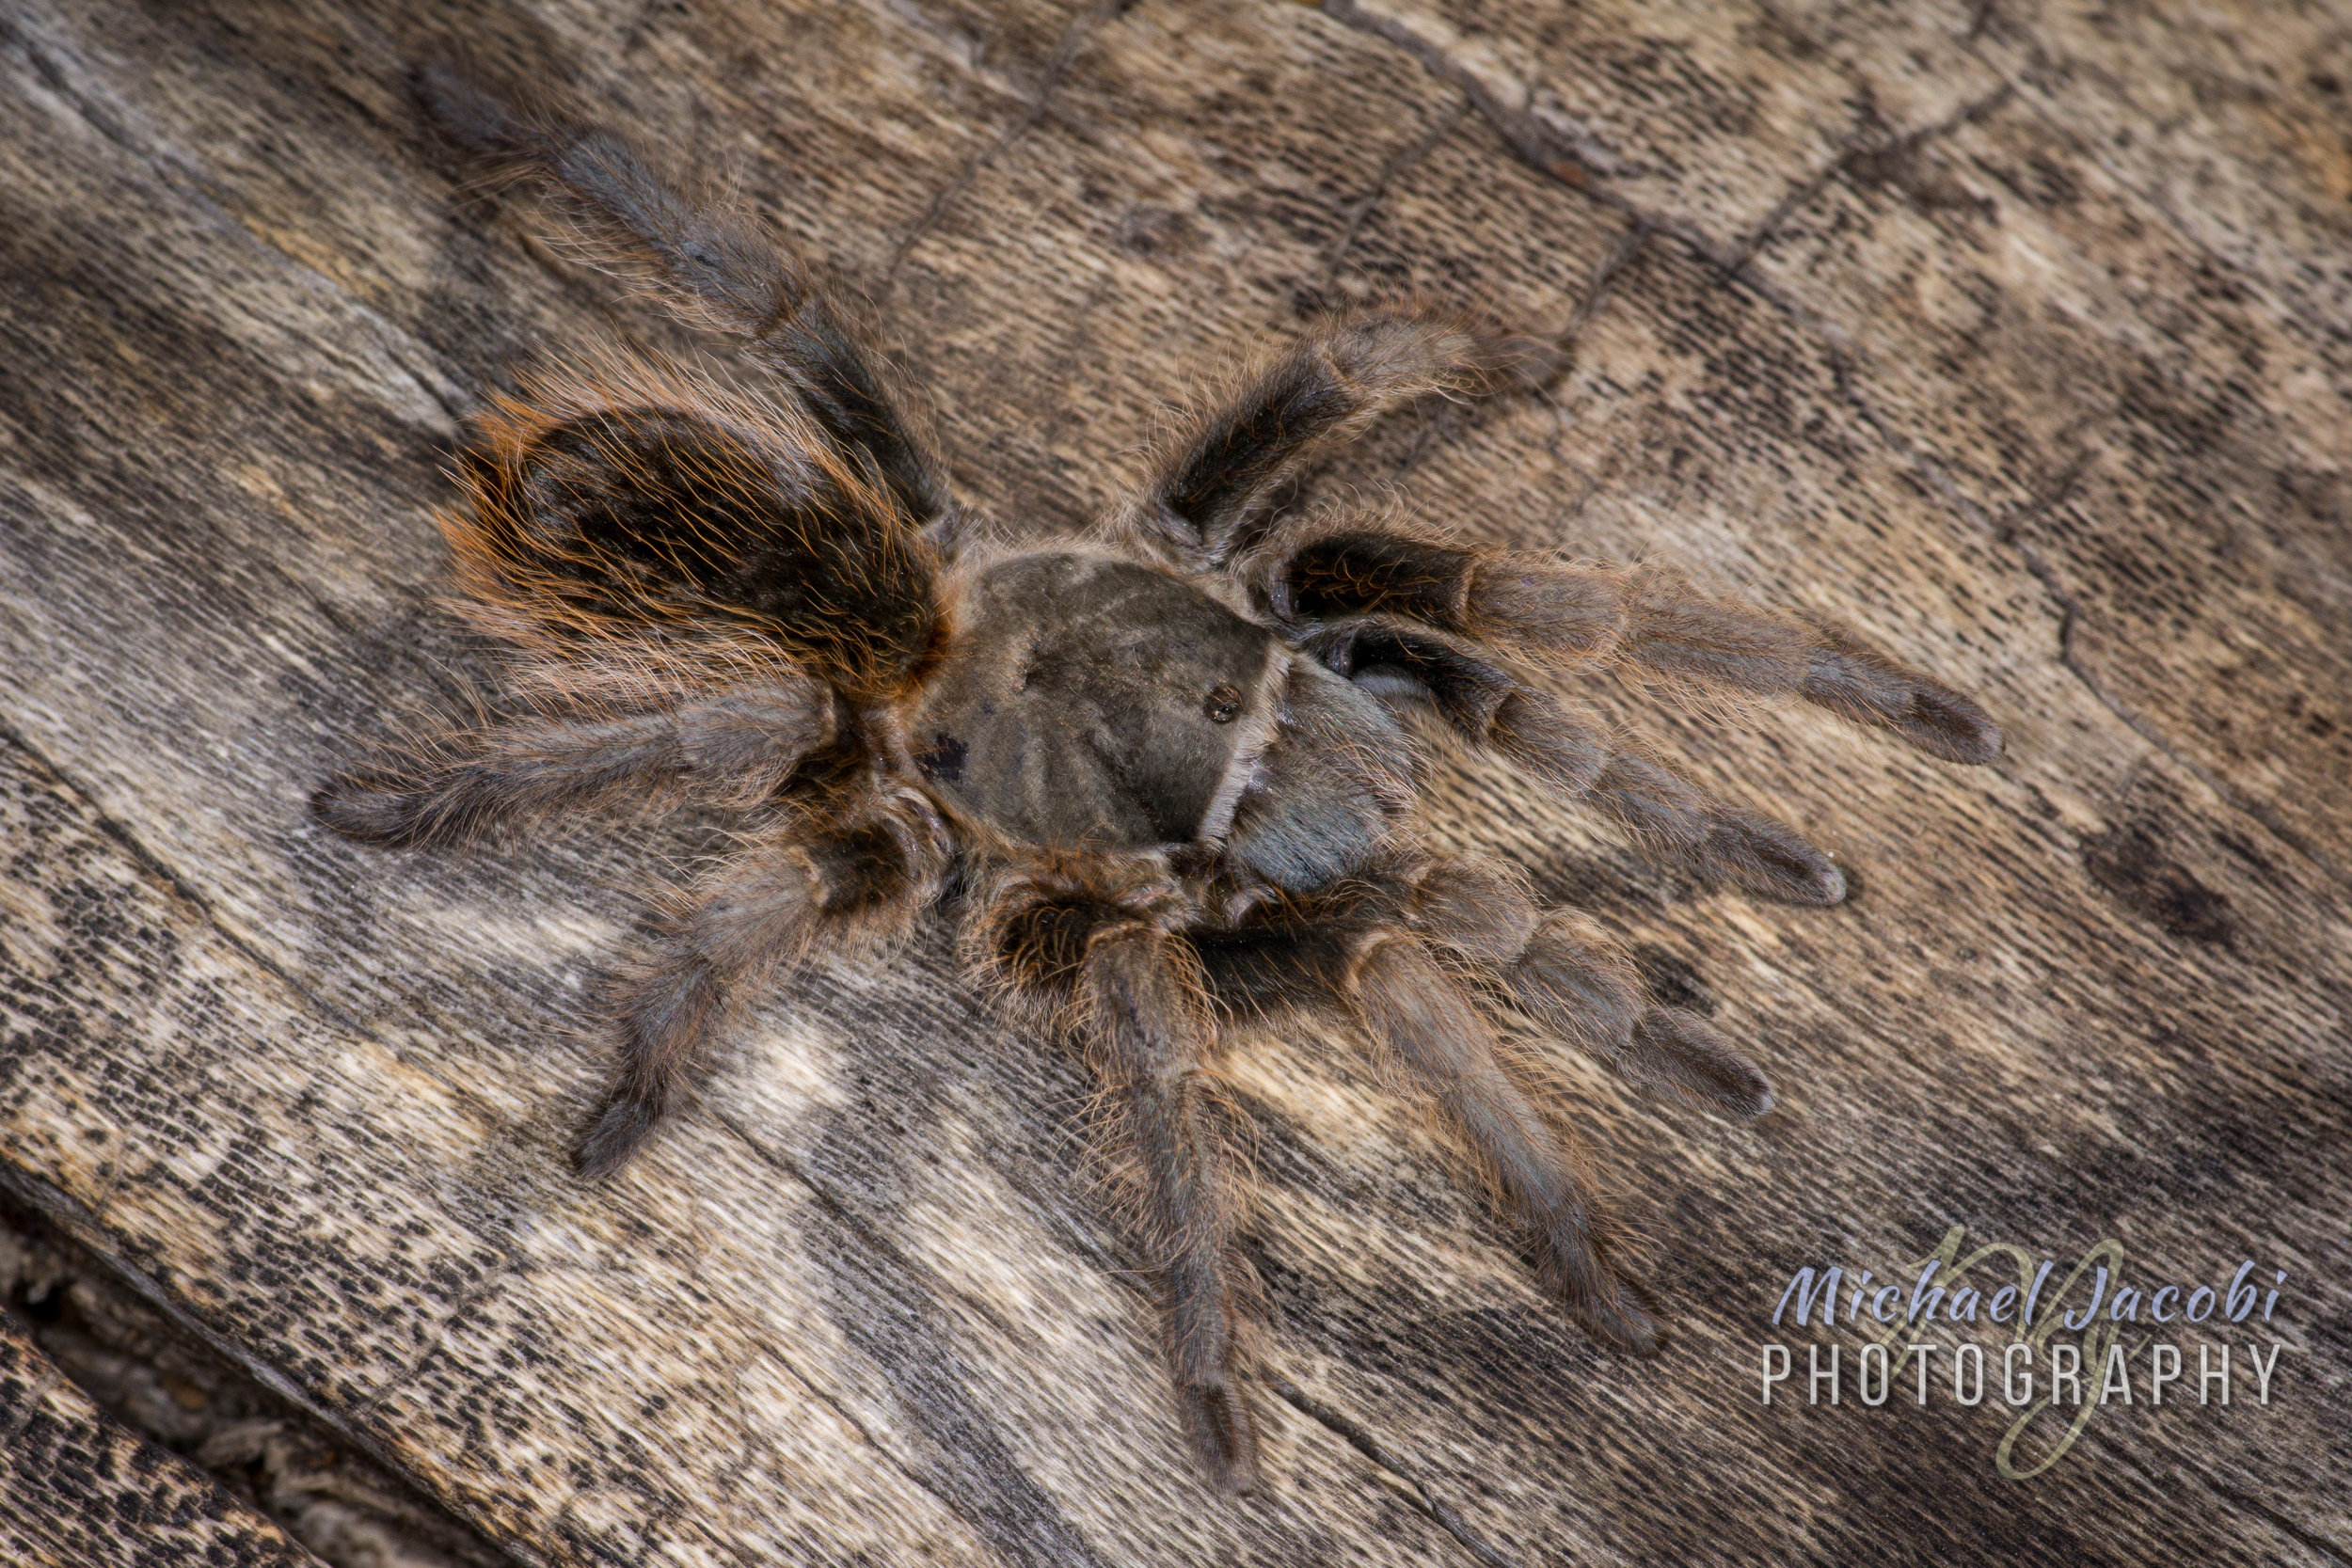 Aphonopelma chiricahua , 5645 ft., Chiricahua Mountains, Cochise Co., Arizona